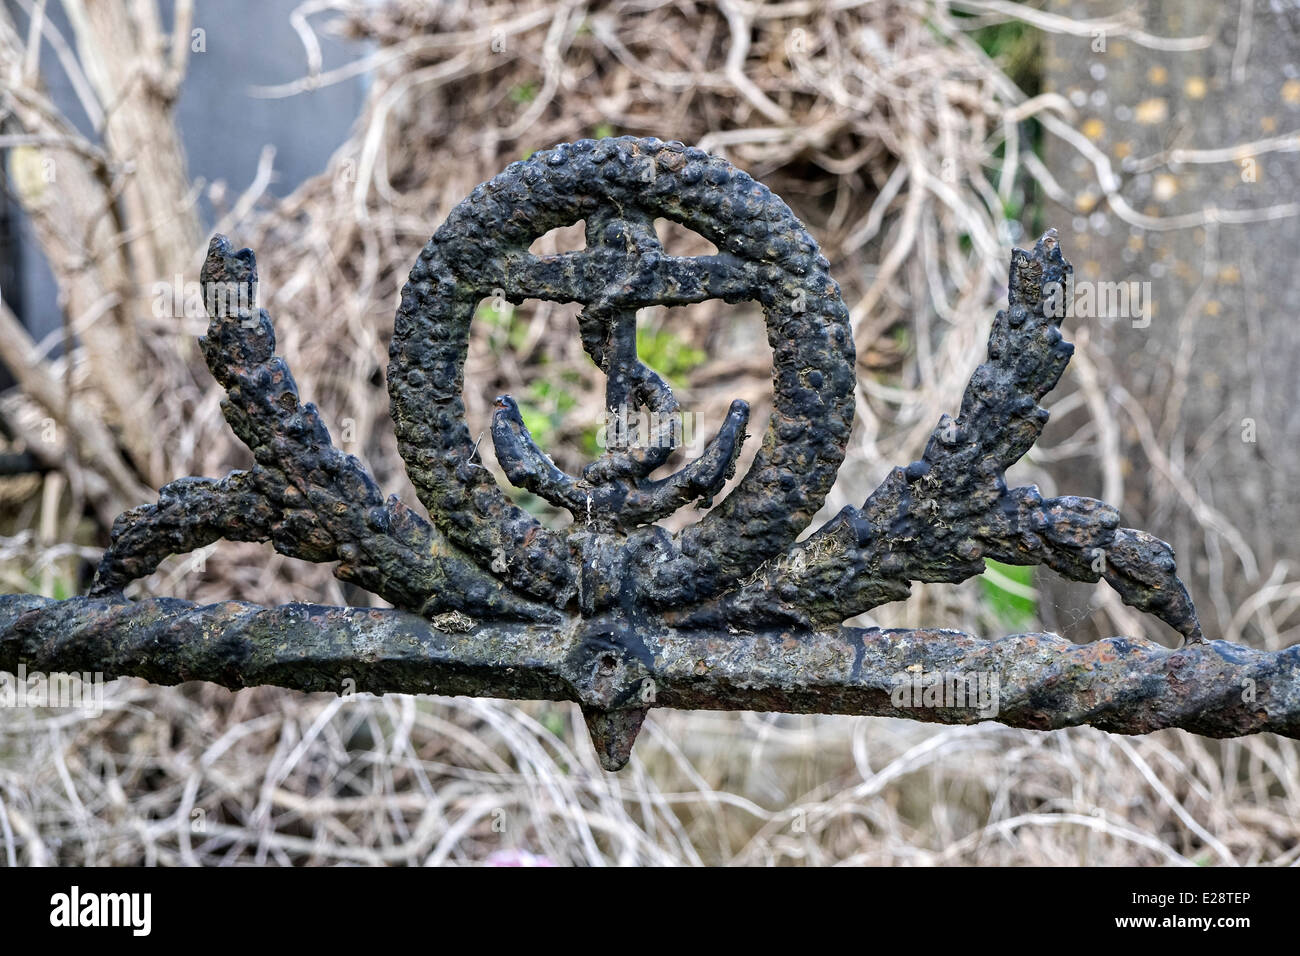 Rusty wrought iron image of the anchor insignia of the British Royal Navy on a grave at Mornington, co. Louth Ireland - Stock Image